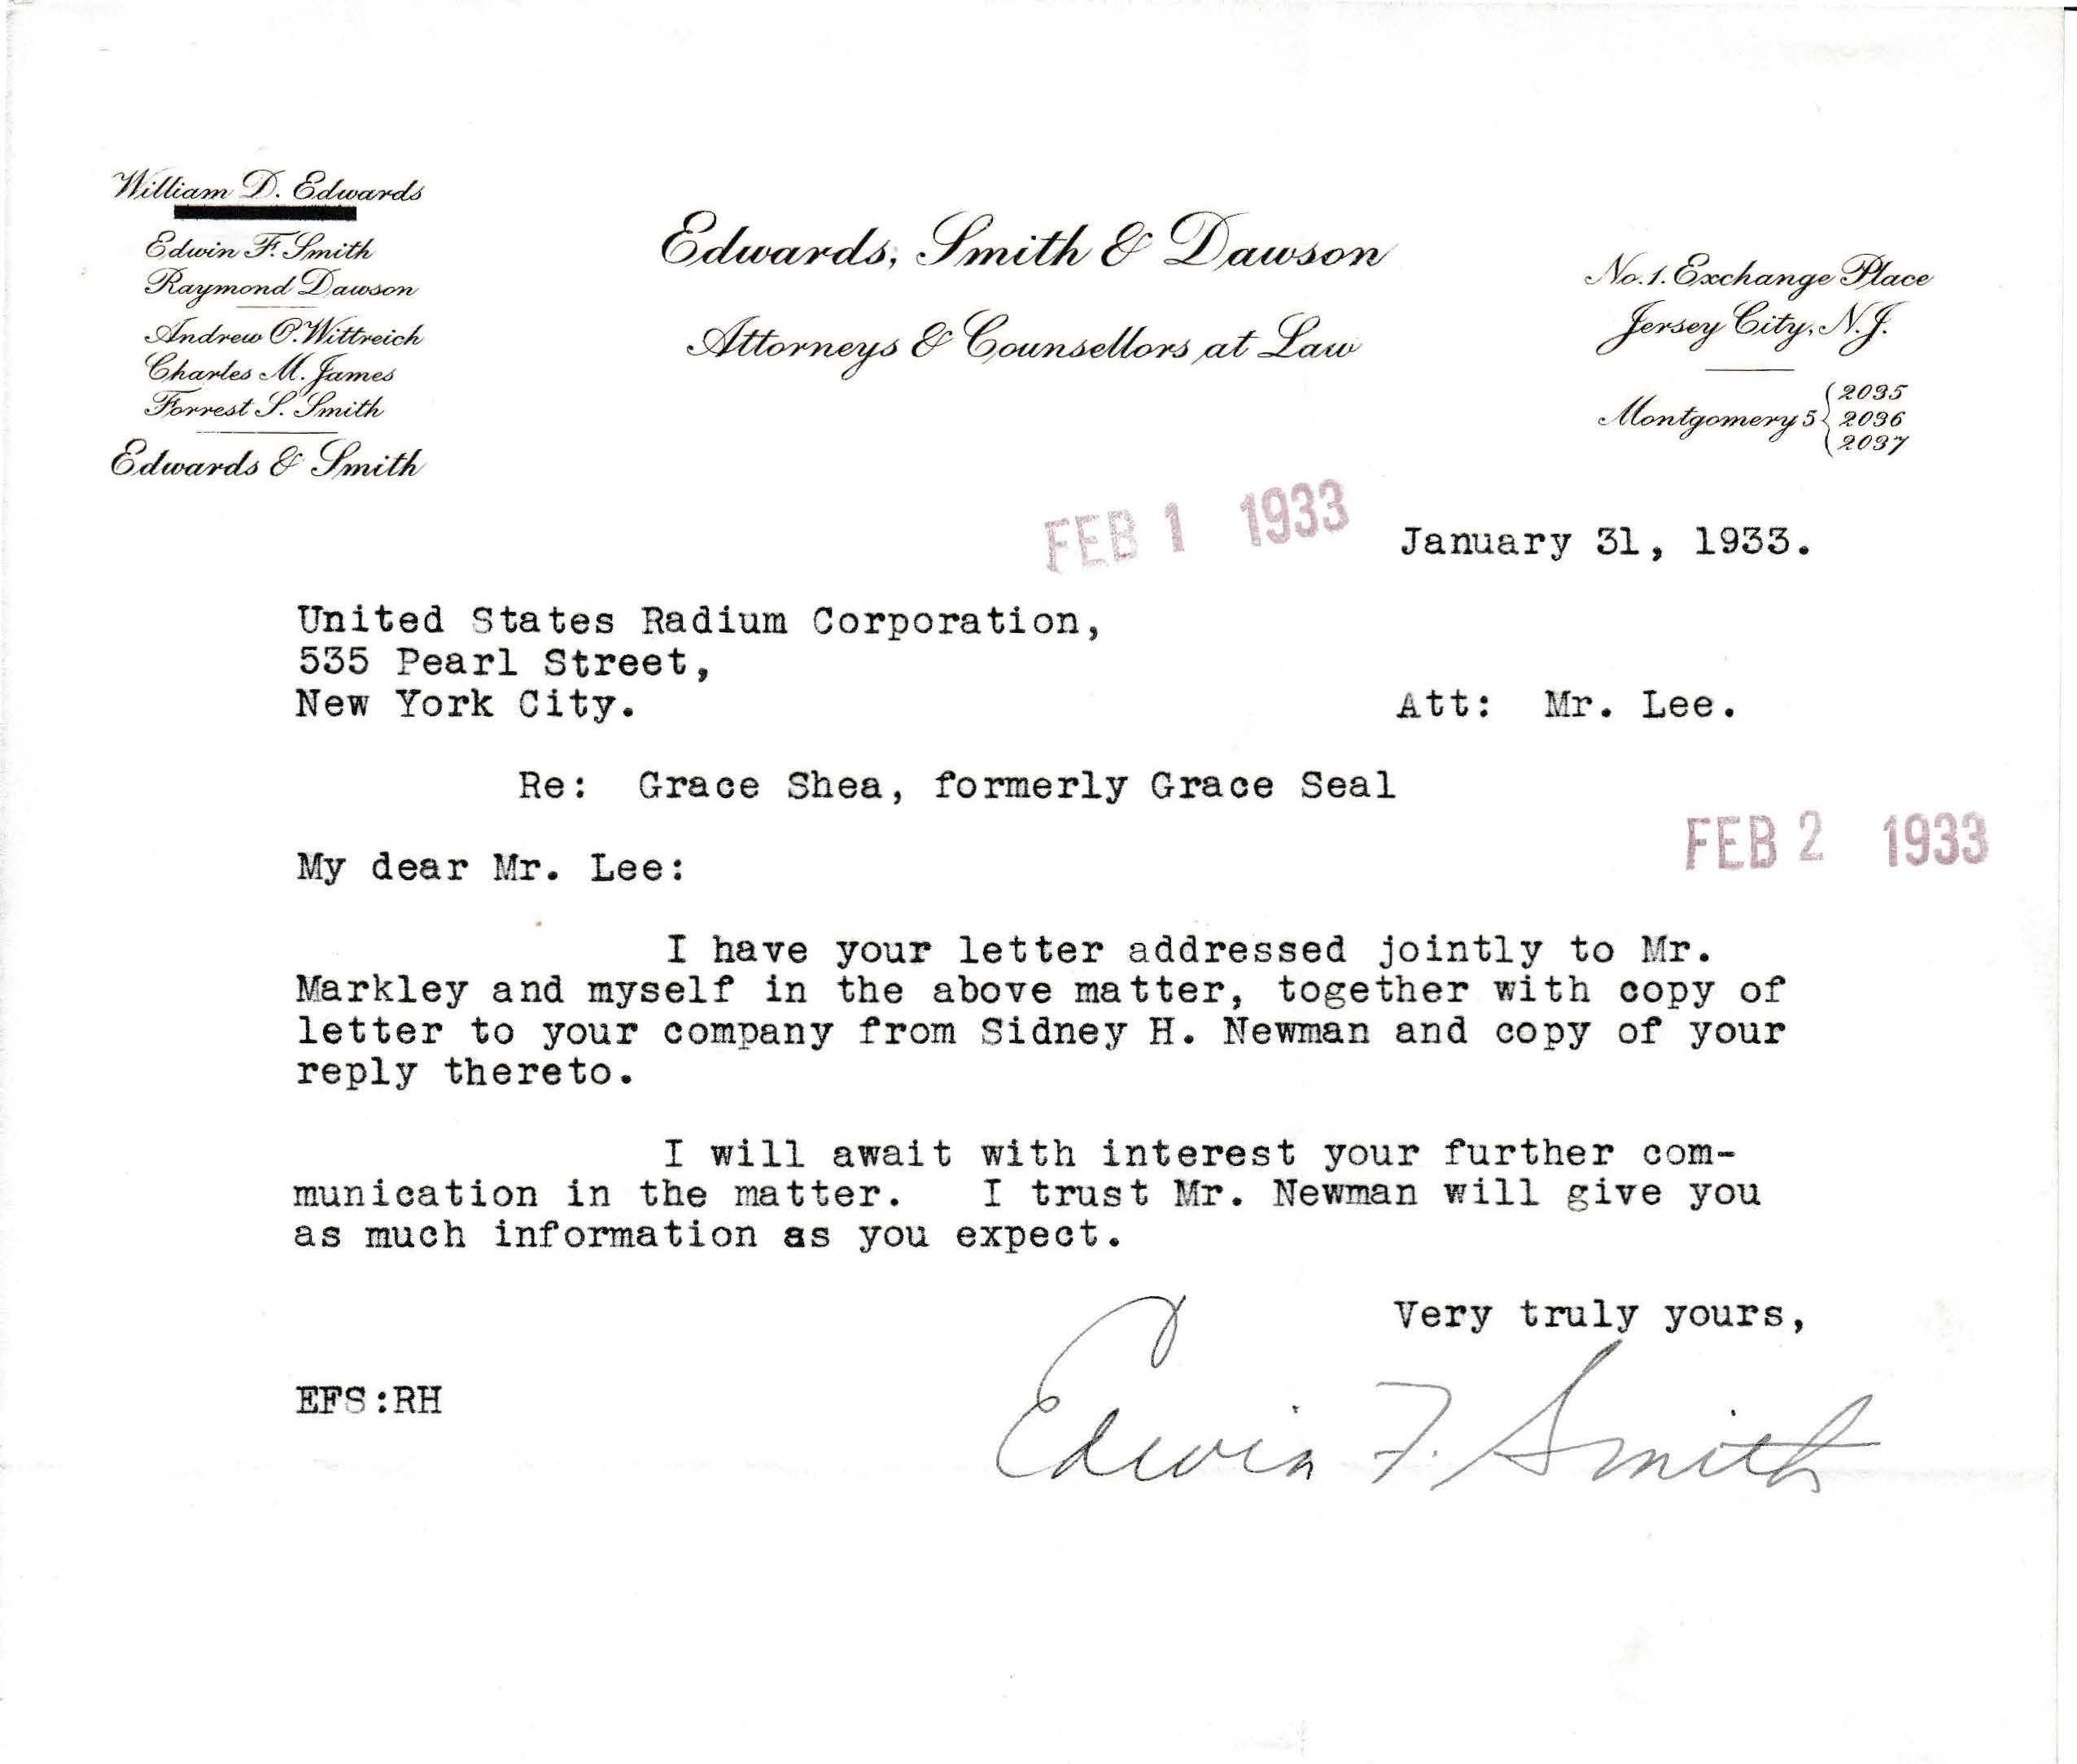 Letters Received to Mr. Lee [C.B. Lee], January 31, 1933